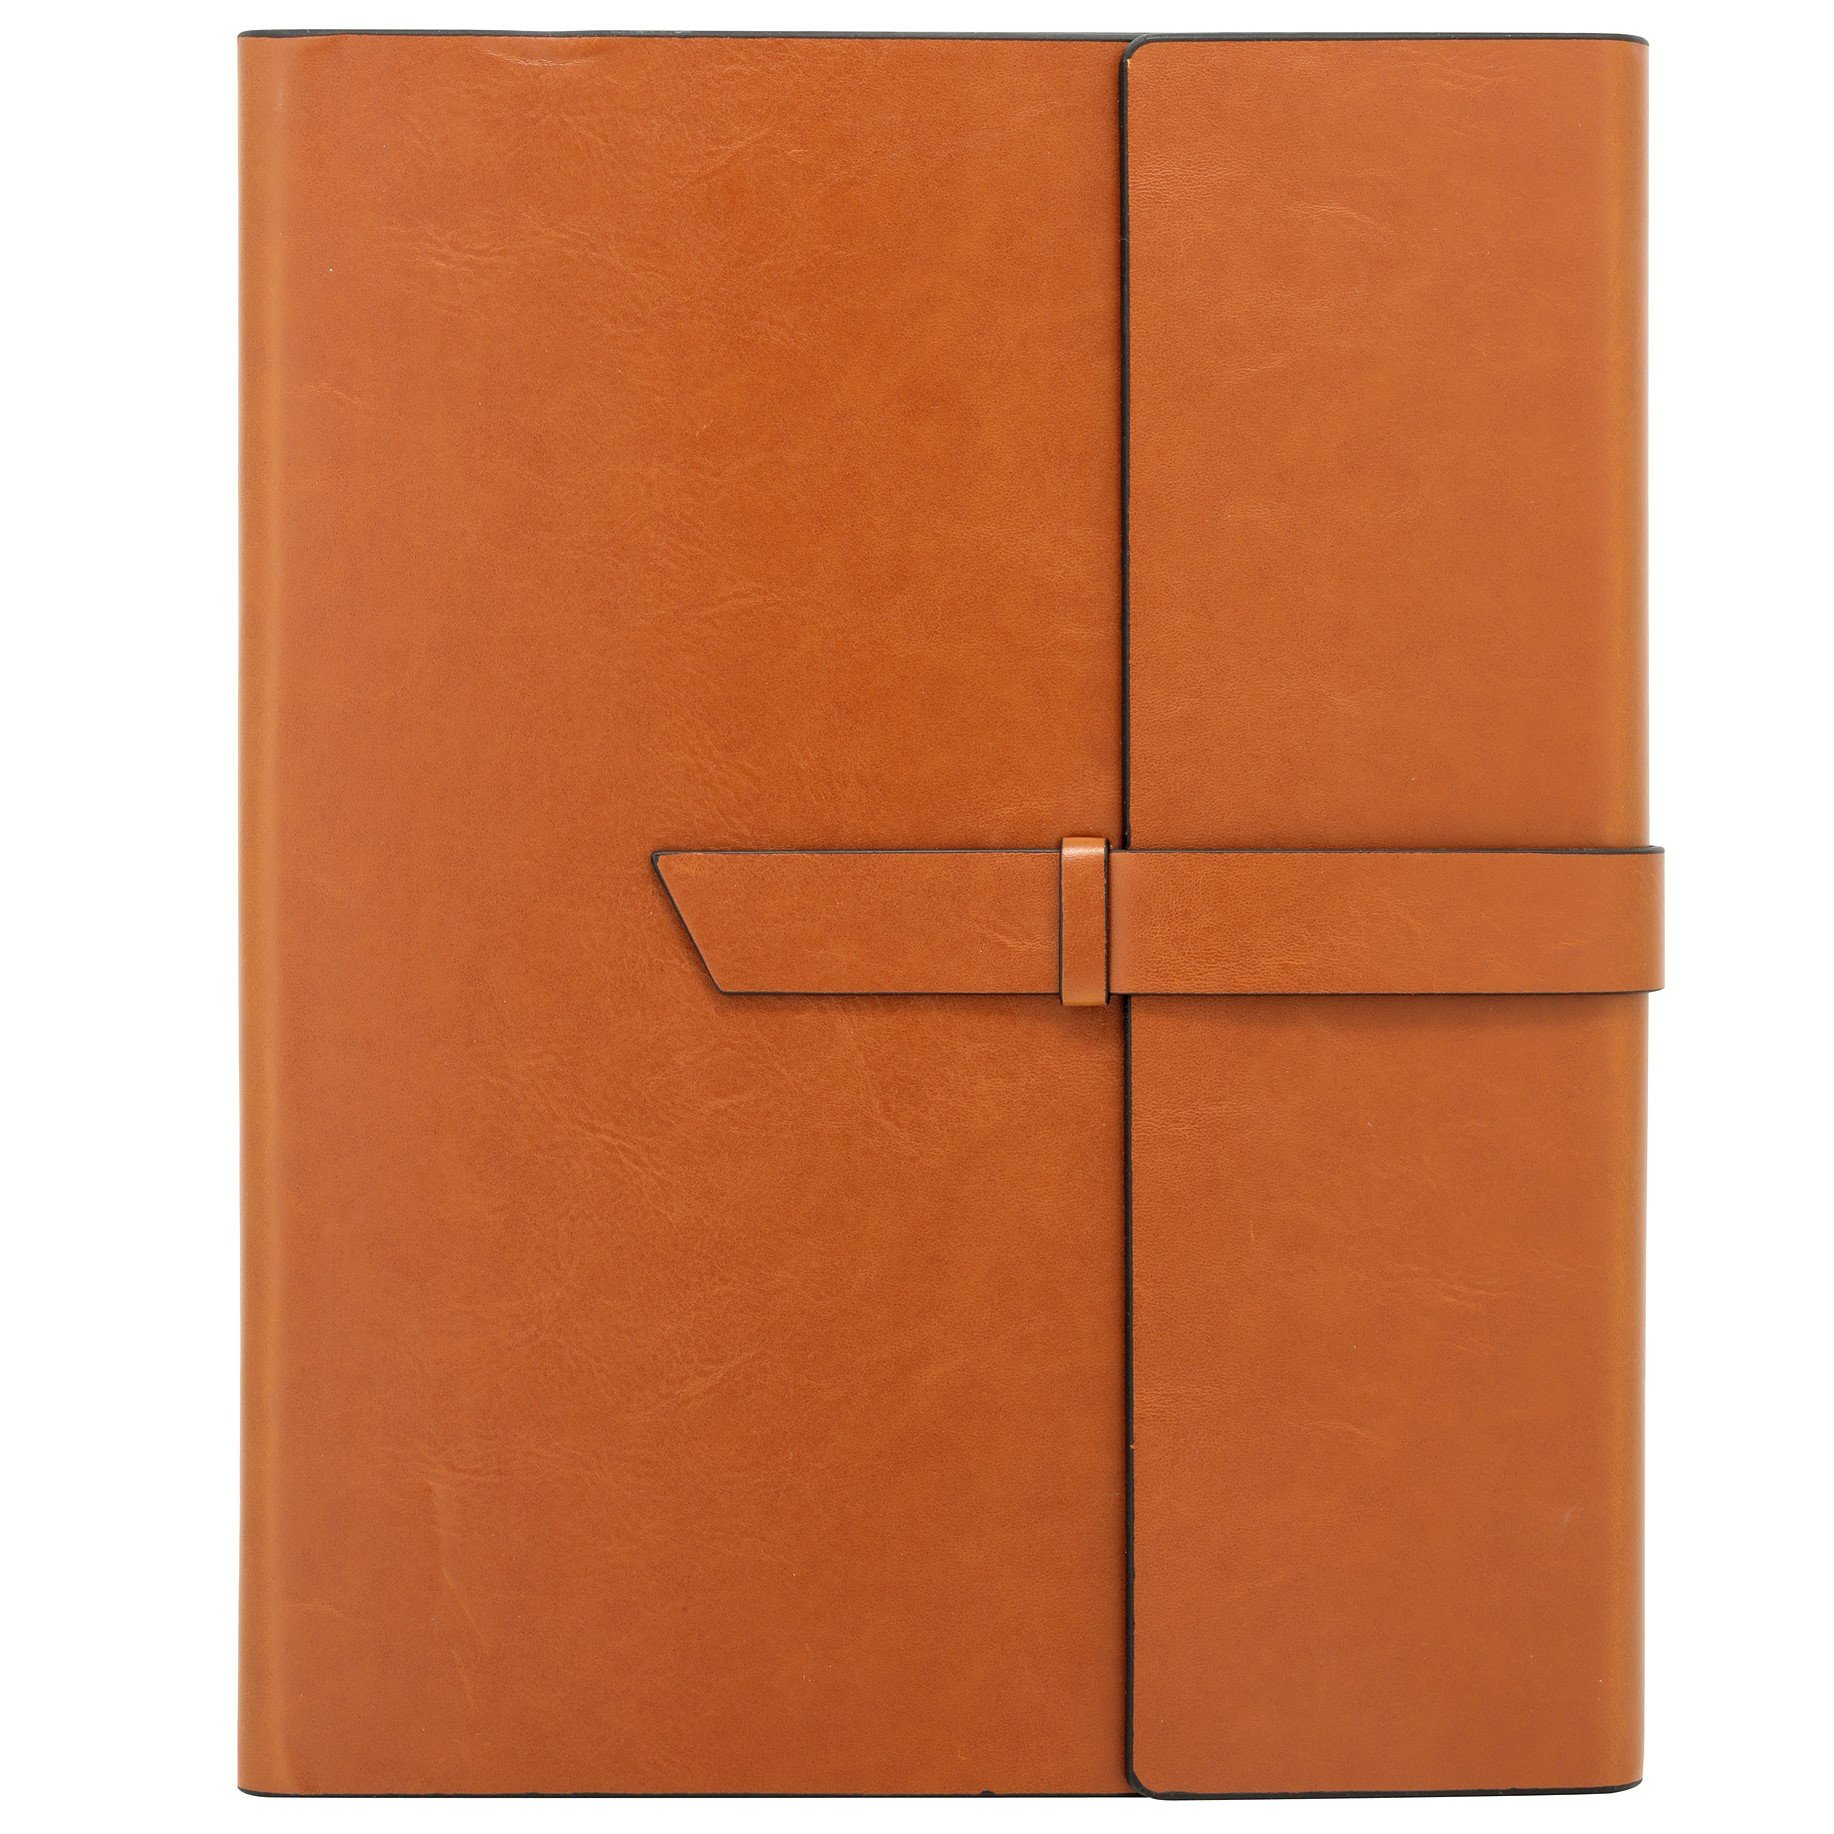 Gallaway Leather Padfolio Portfolio Folder - Perfect for your Interviews, Resumes, Presentations and Meetings and it fits Letter, Legal, A4 Notebooks and Notepads (Brown)